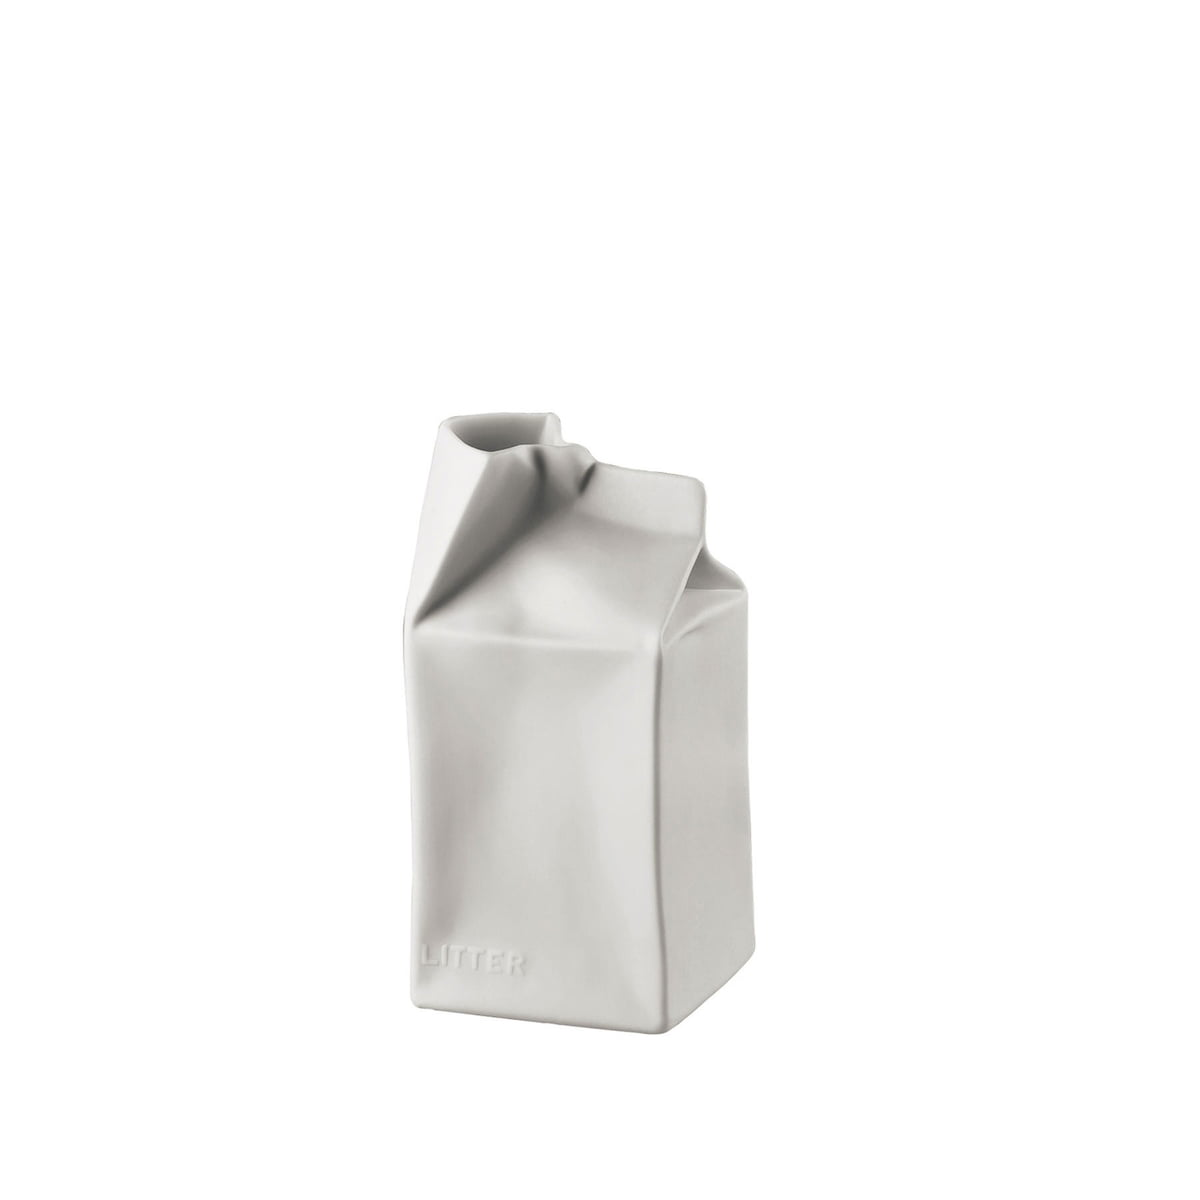 Pacco bello vase by rosenthal at the shop rosenthal paper bag vase 14 cm white matt polished floridaeventfo Gallery